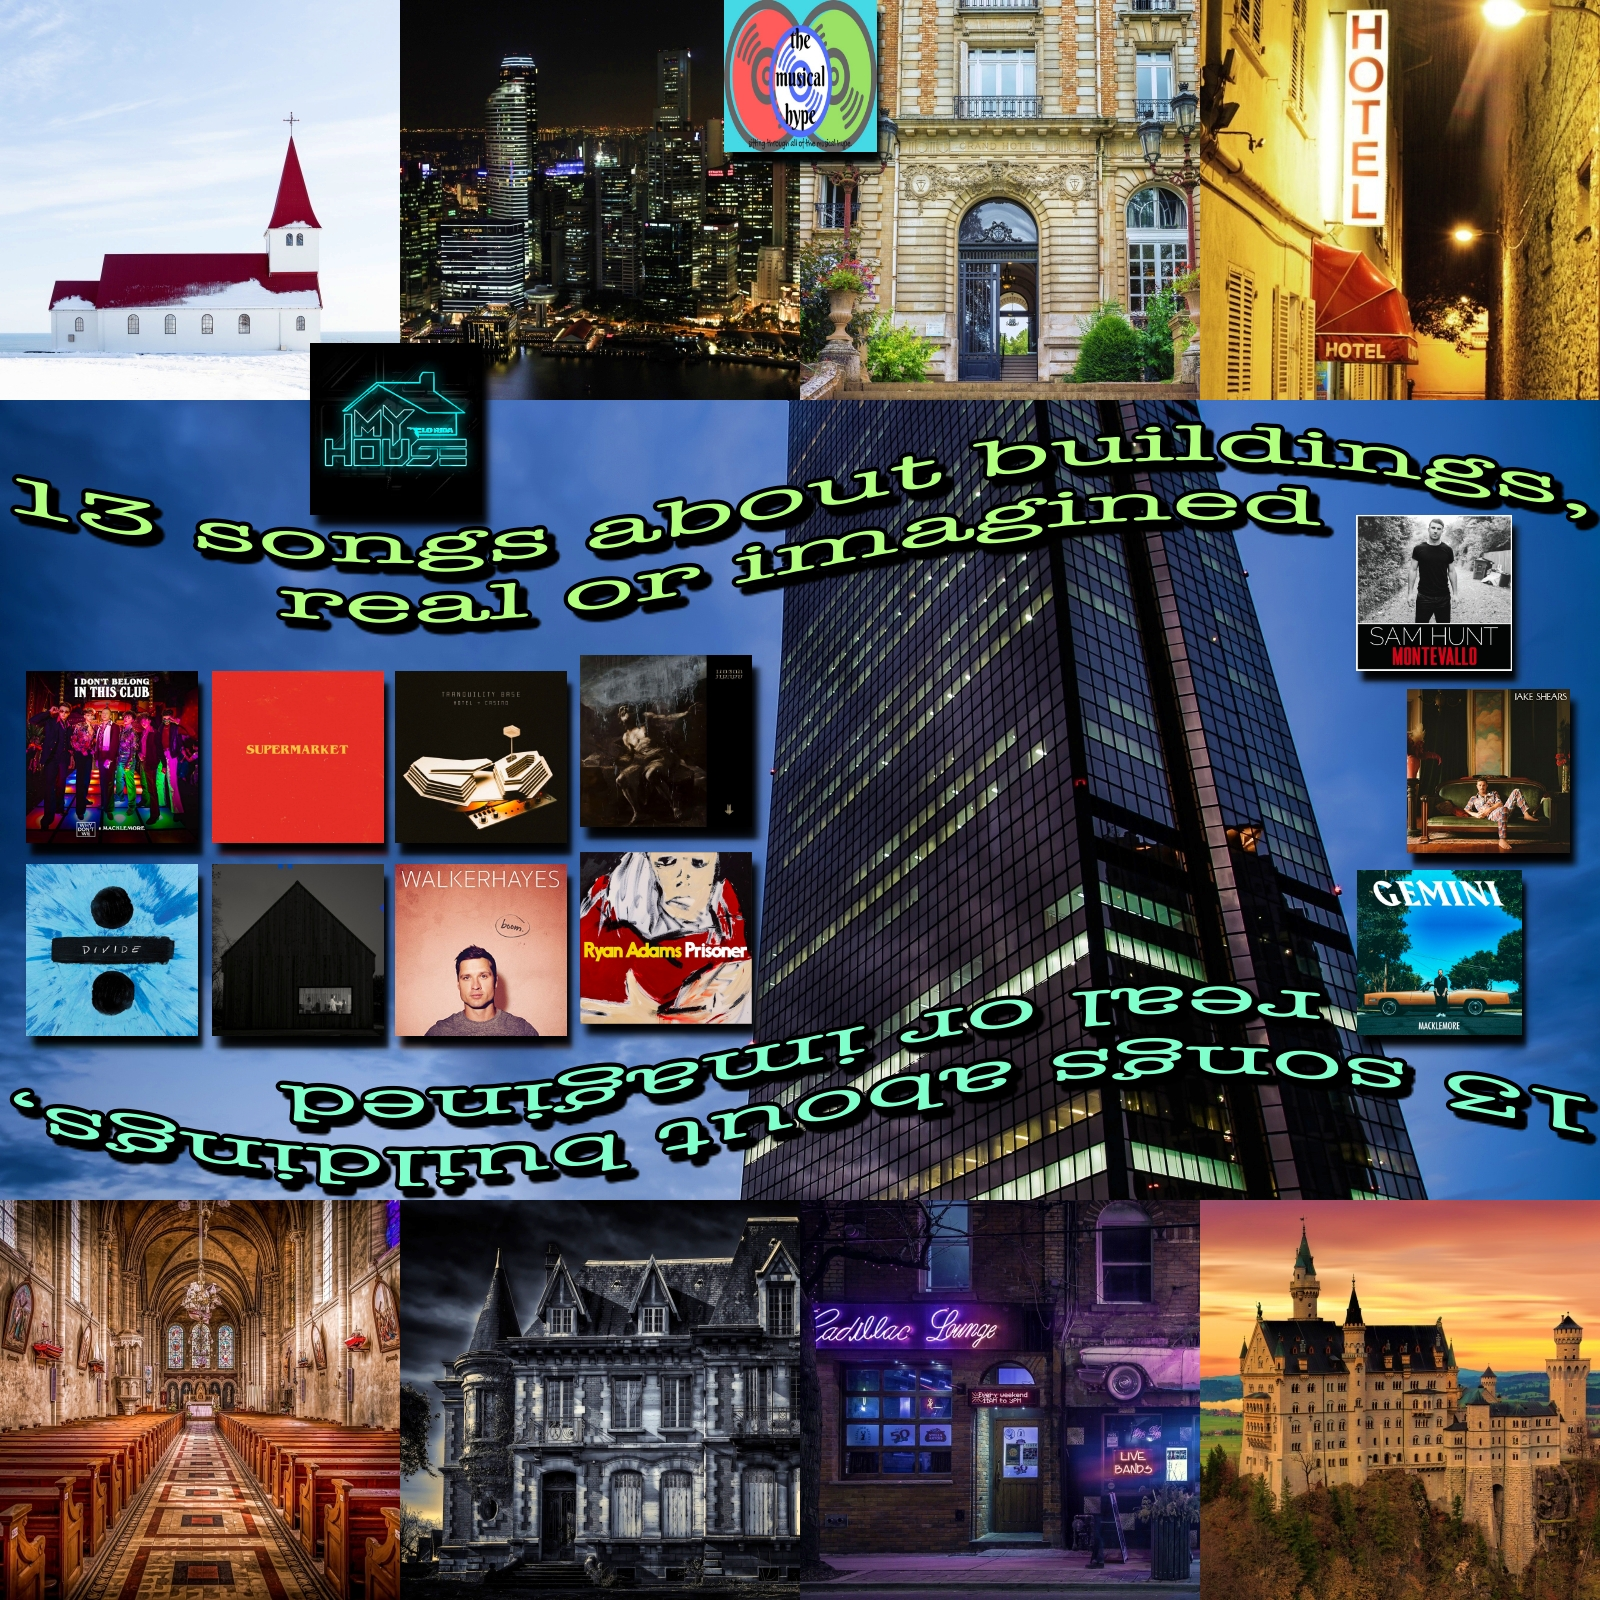 13 Songs About Buildings, Real or Imagined | Playlist